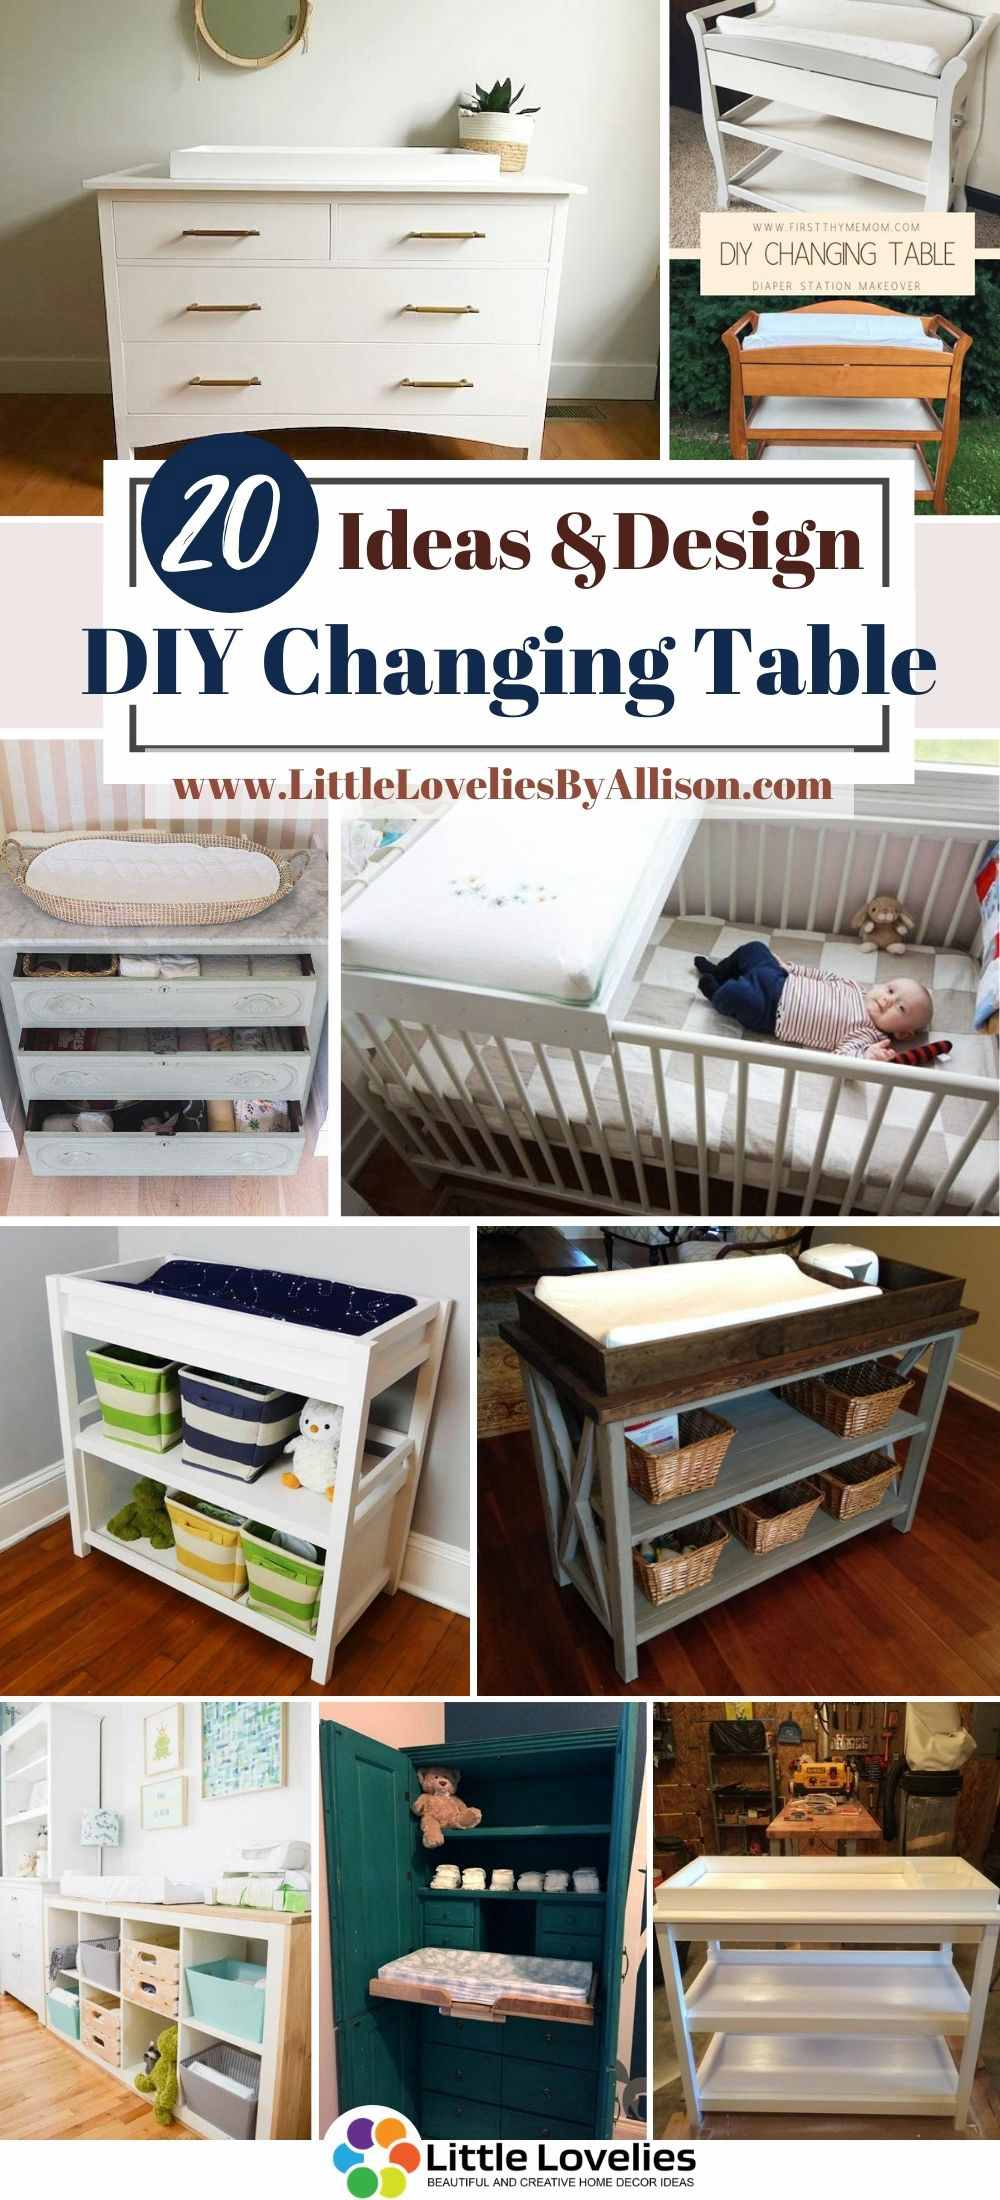 Best-DIY-Changing-Table-Projects.jpg